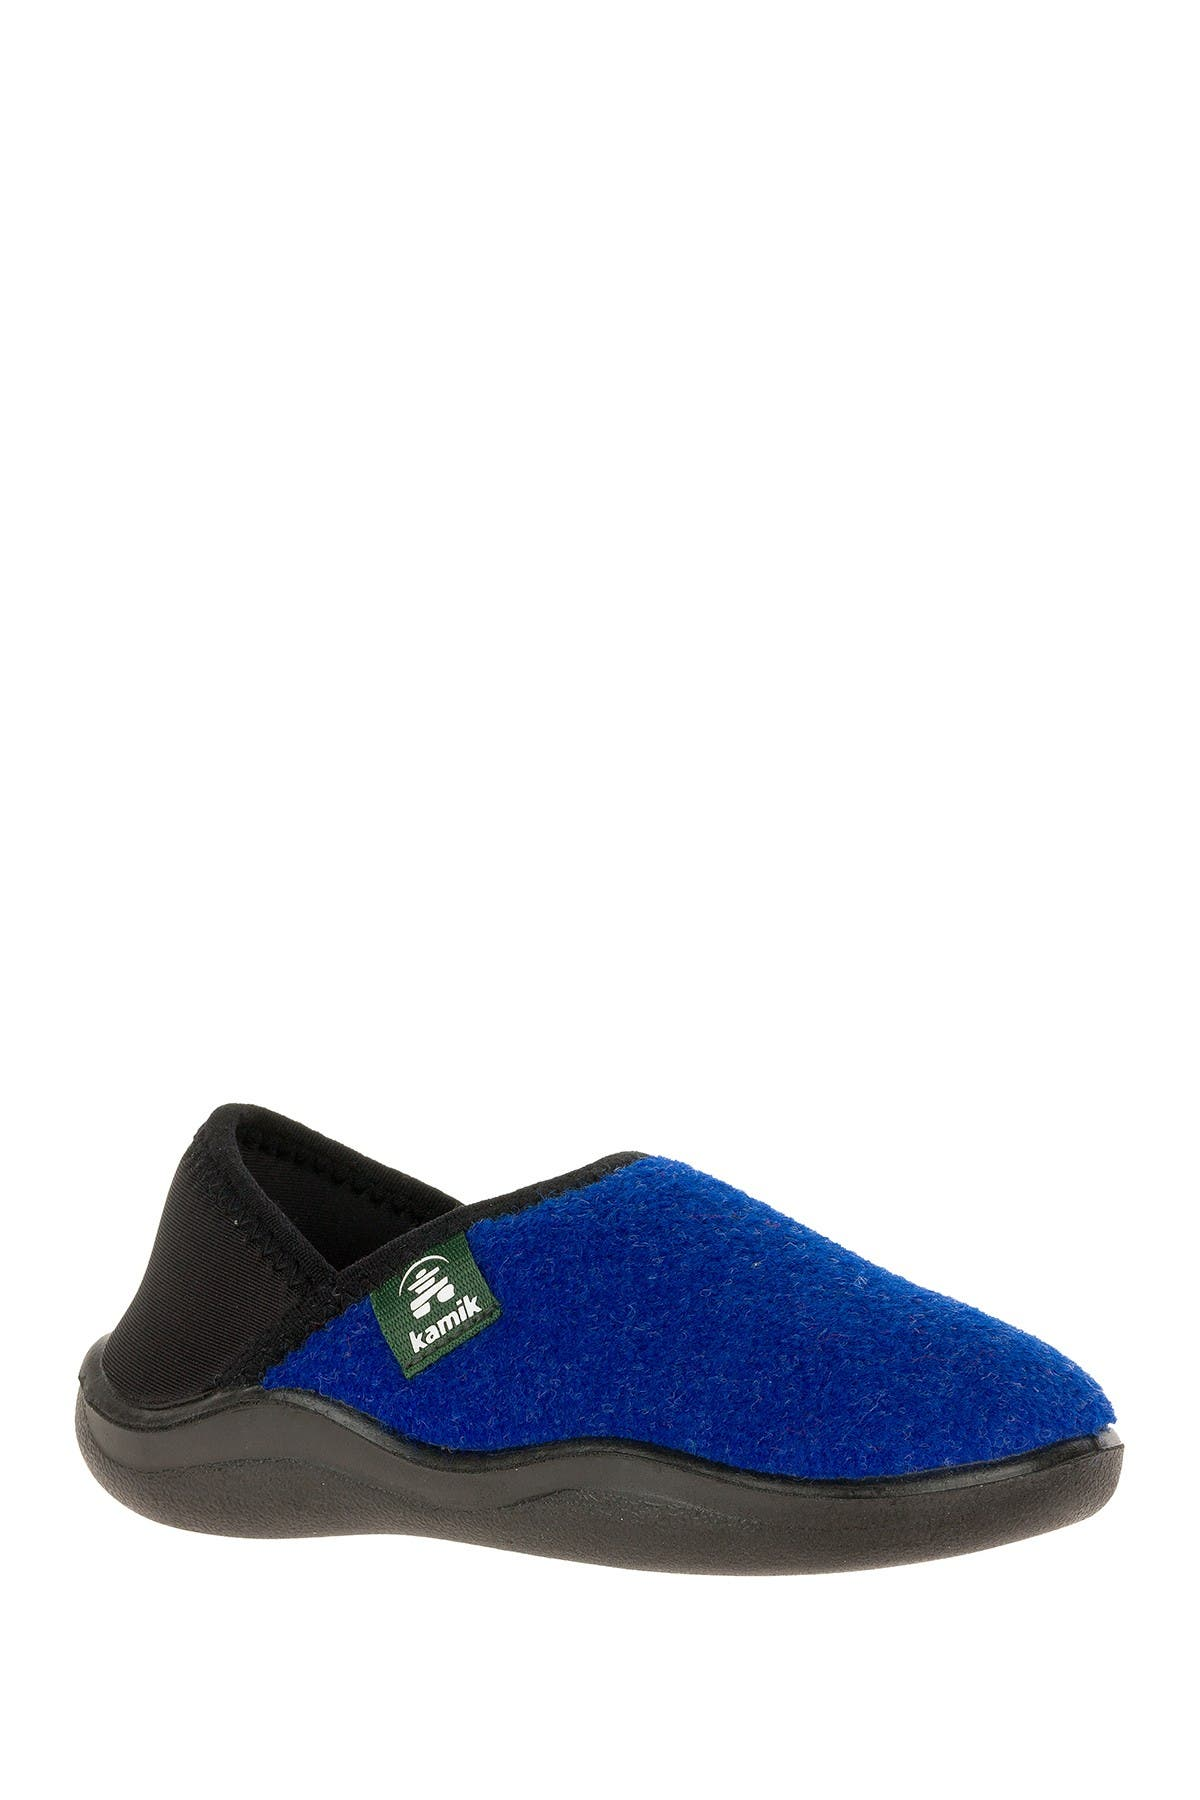 Image of Kamik Cozytime Slipper